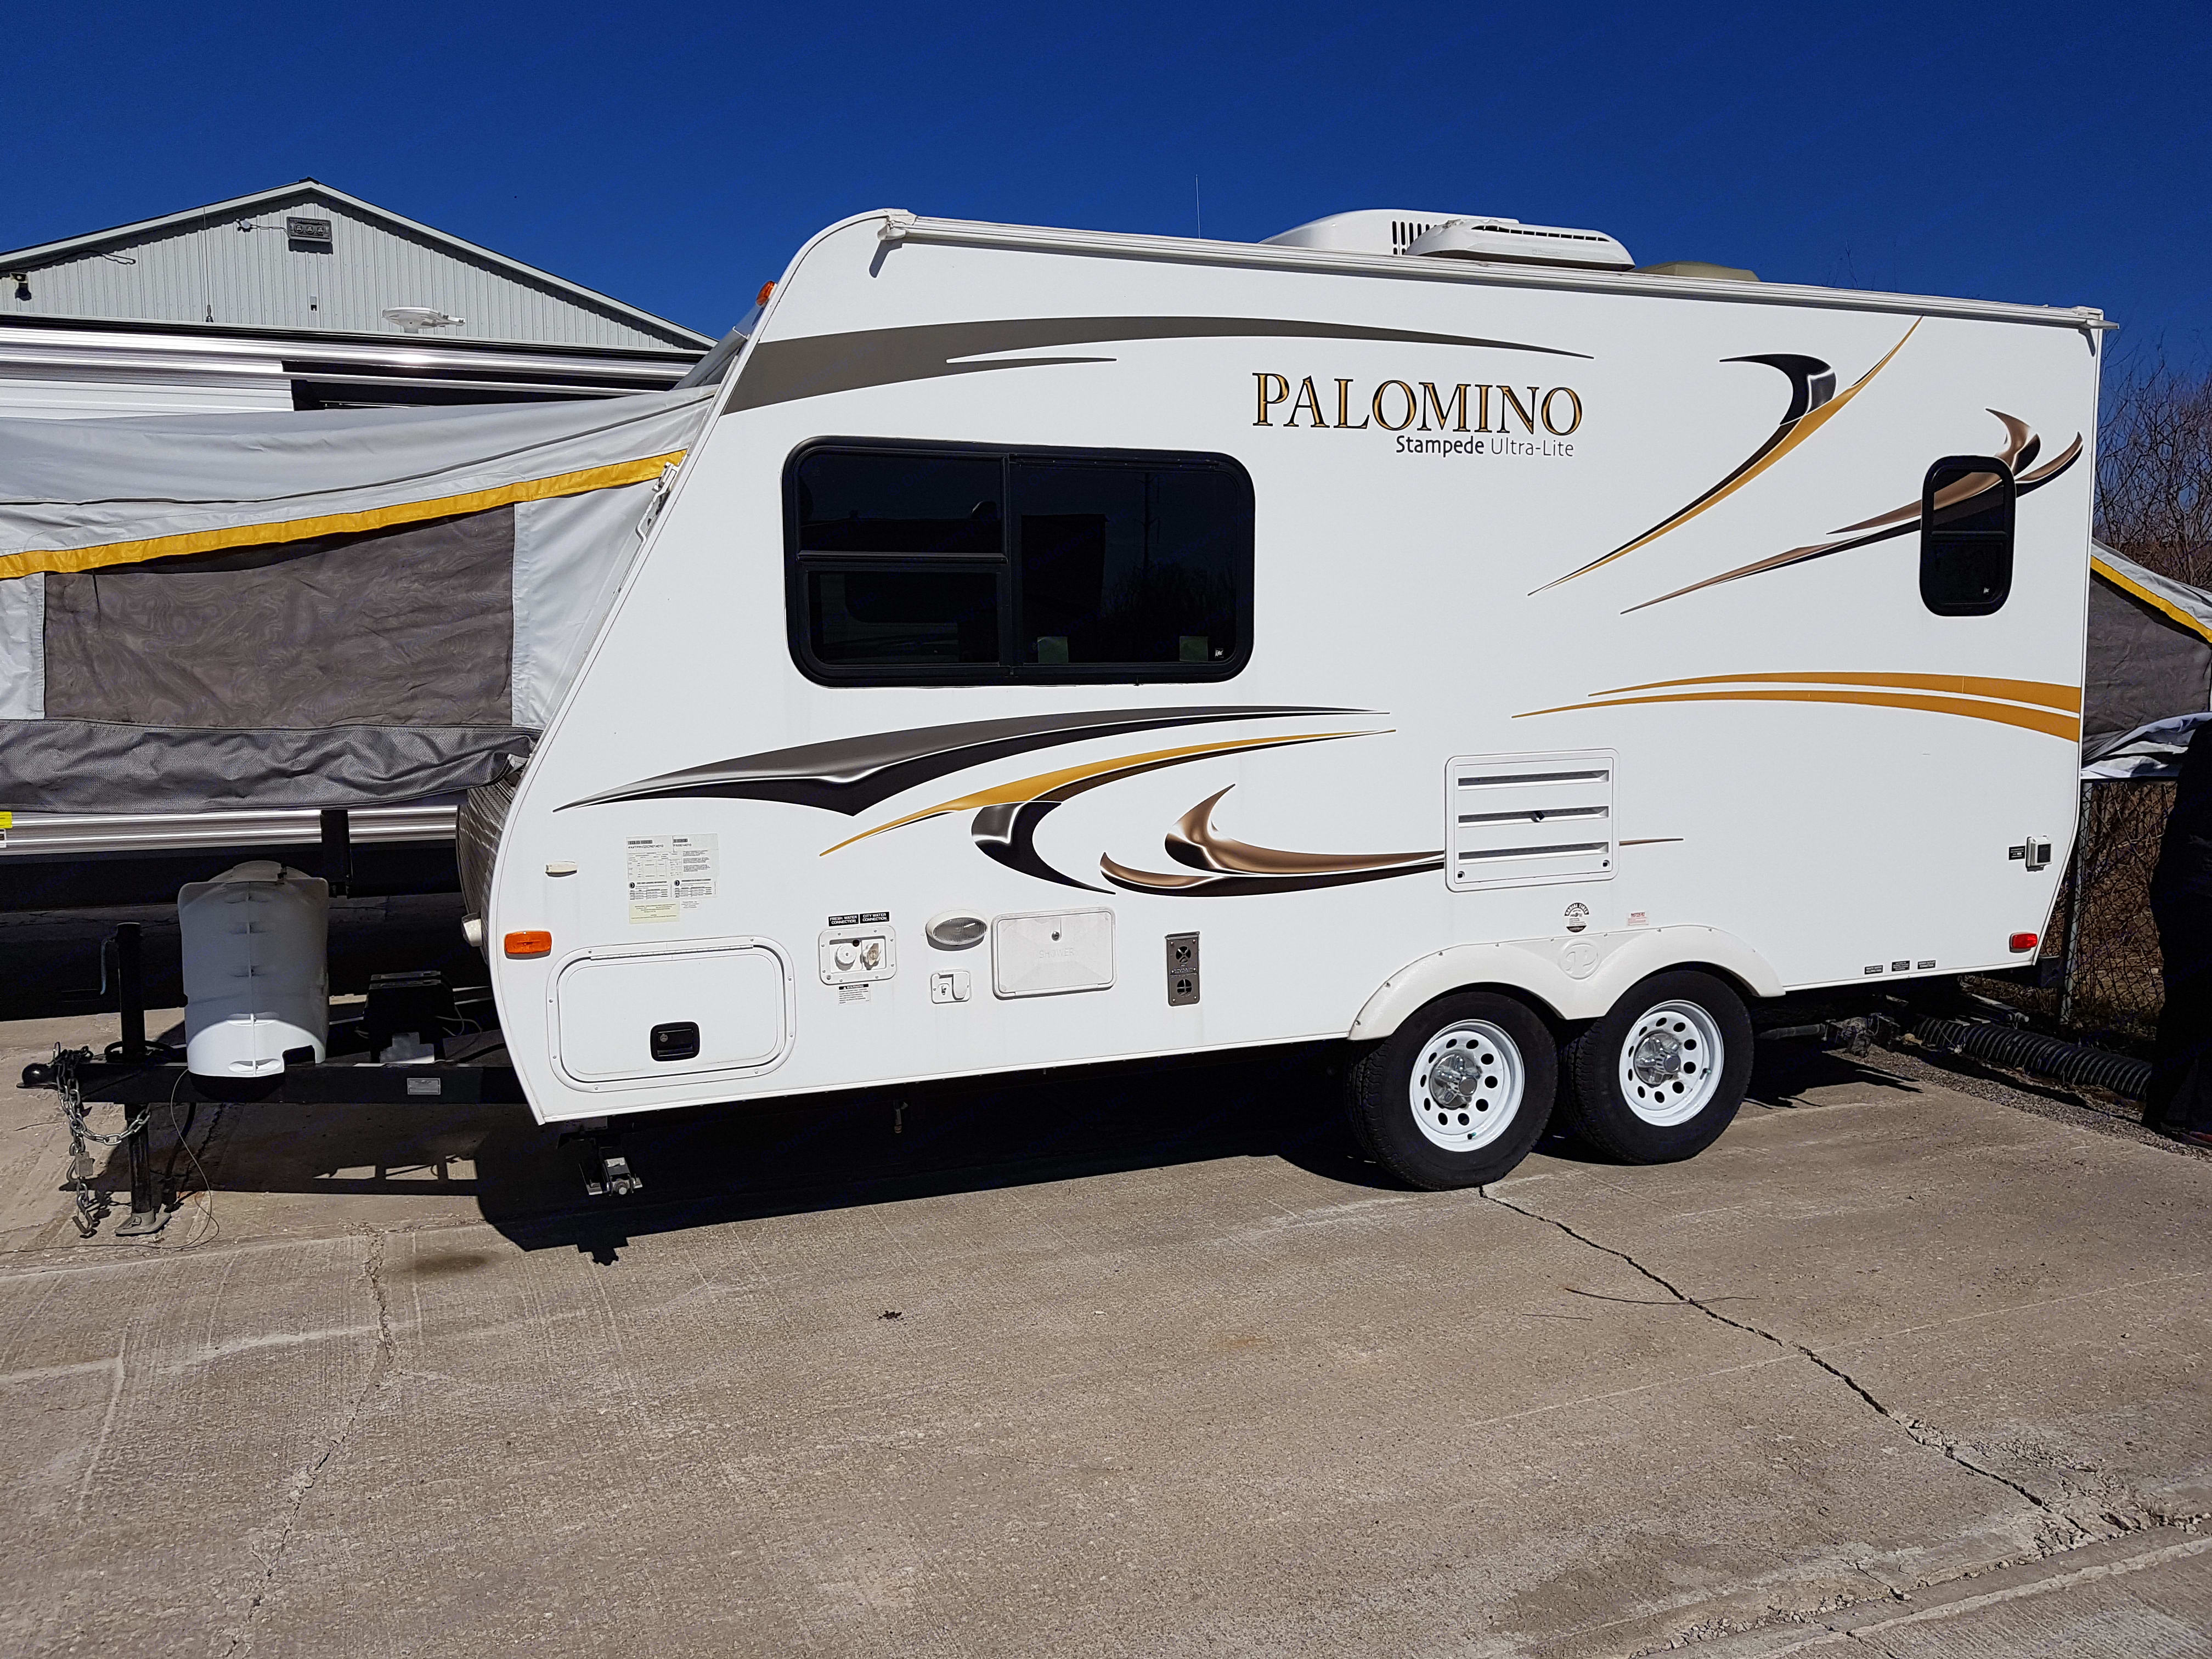 Small enough to tow easily but full of features and convenience. Palomino Stampede 2012